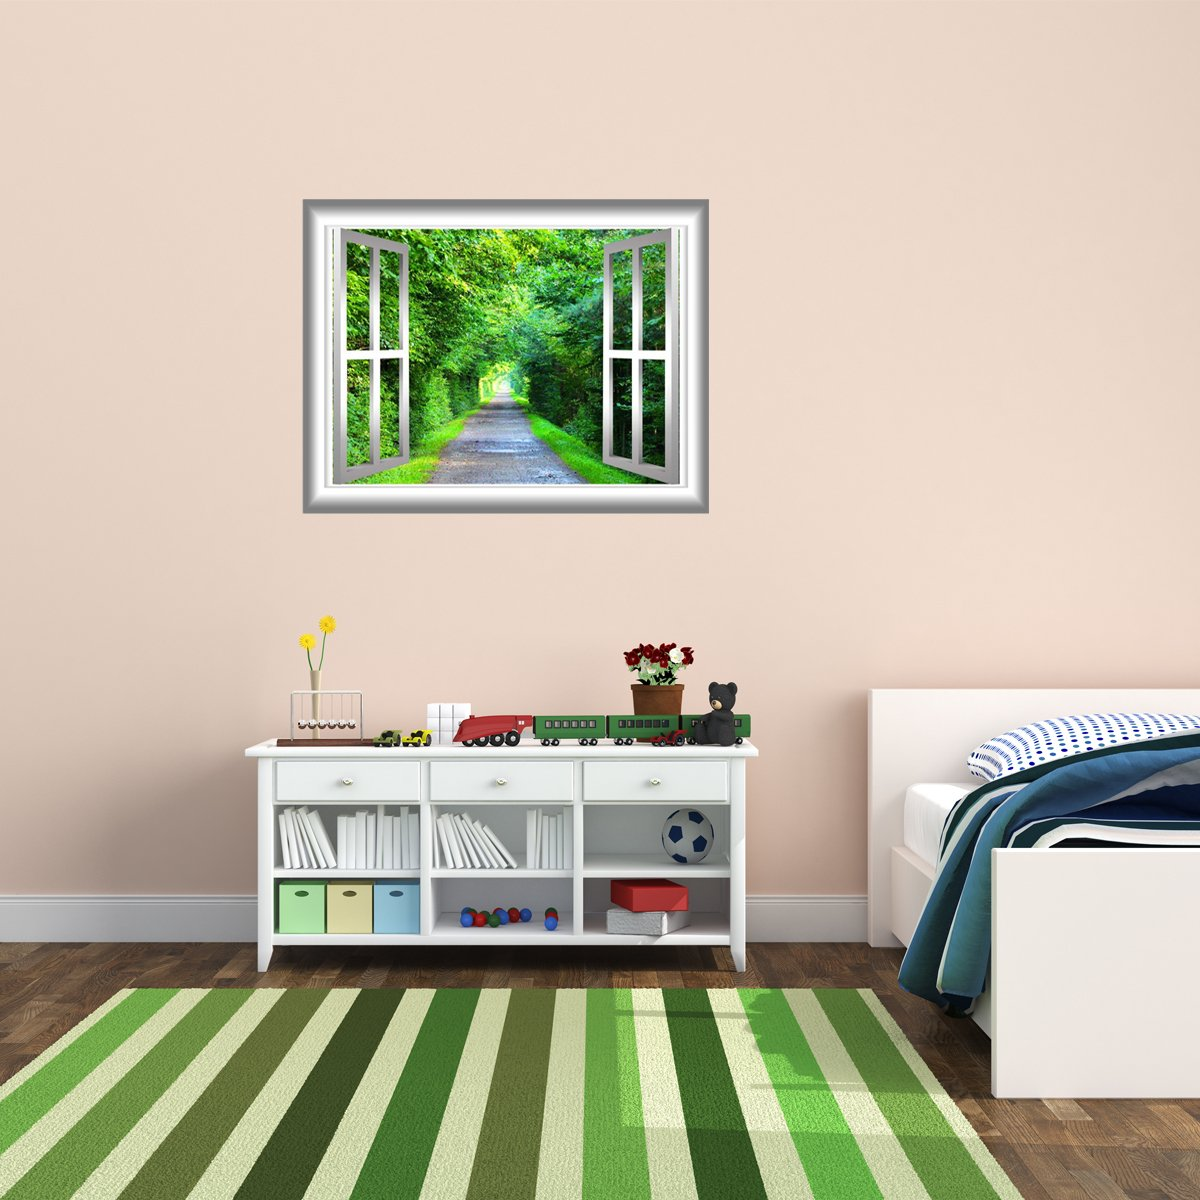 VWAQ Greenery Wall Decal 3D Forest Wall Cling Peel and Stick Window Mural - NW32 - VWAQ Vinyl Wall Art Quotes and Prints